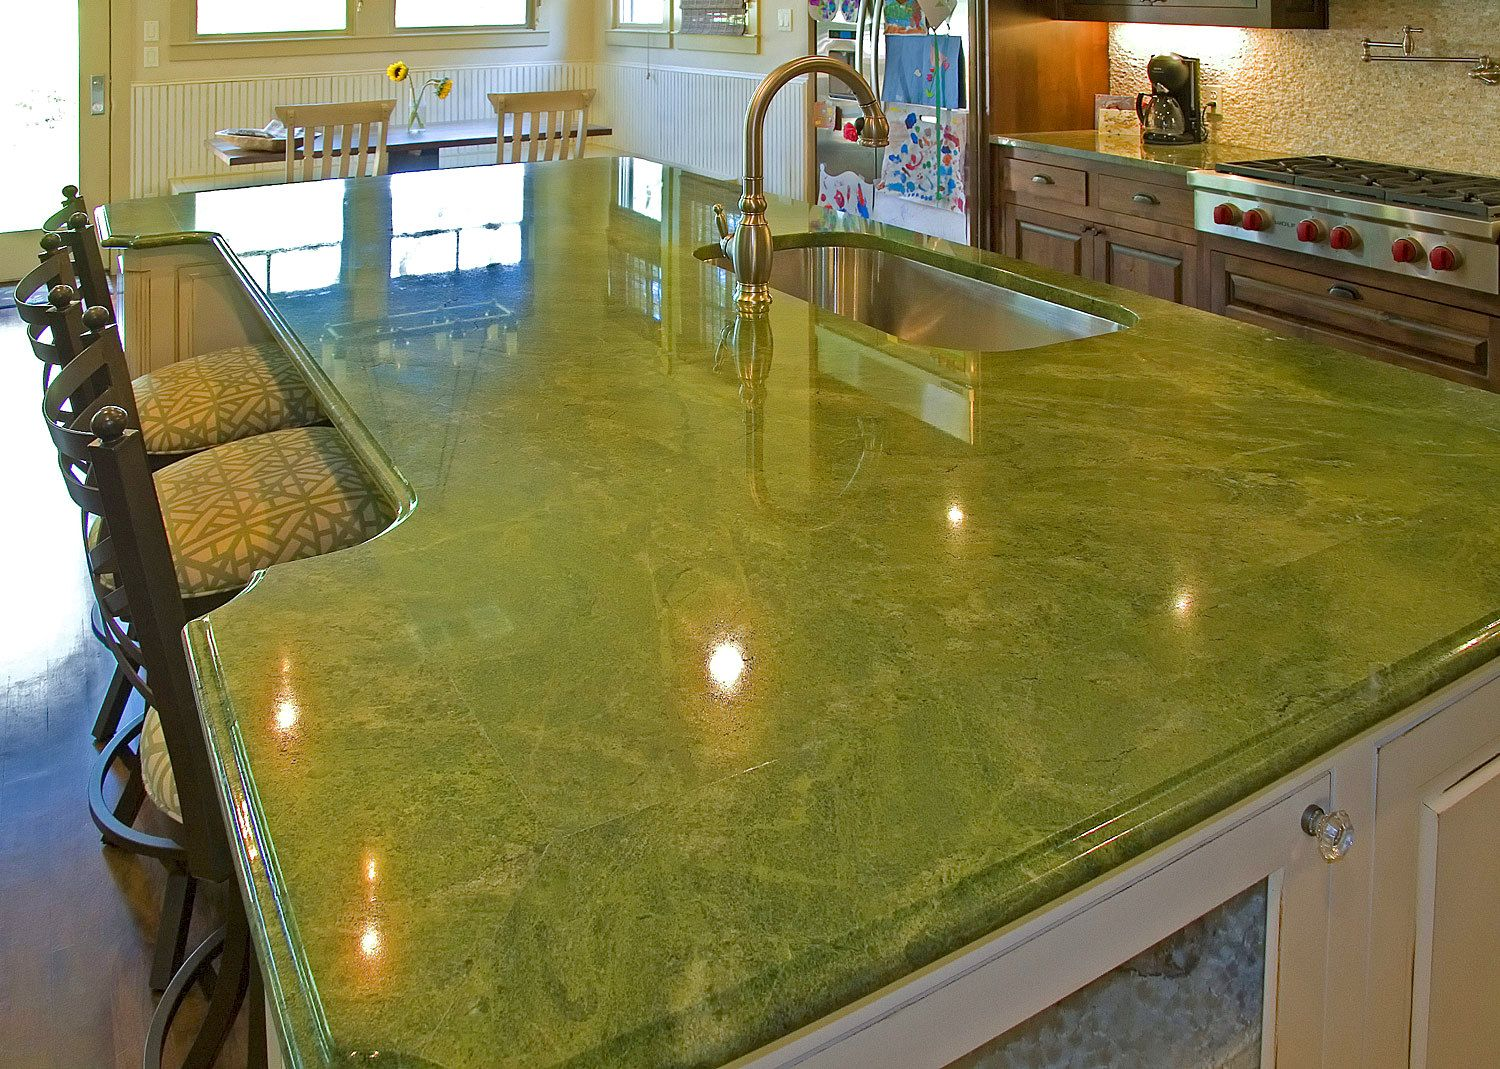 Unusual granite countertops color in solid green with grains and installed on white island and brown wood cabinets